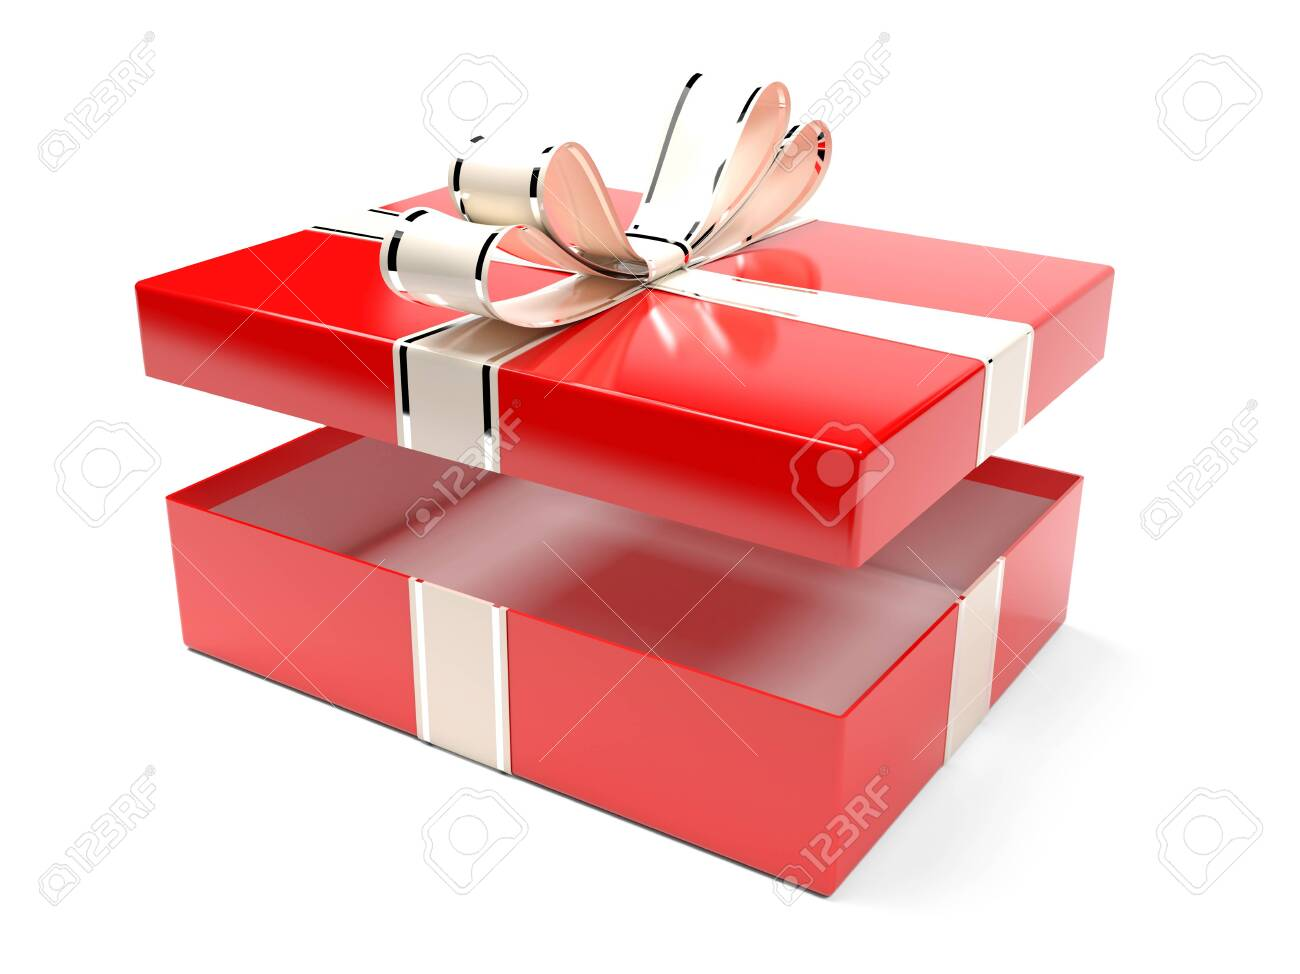 Christmas box. Gift box decorated with shiny silver ribbon. 3d rendering illustration isolated on white background - 150520909